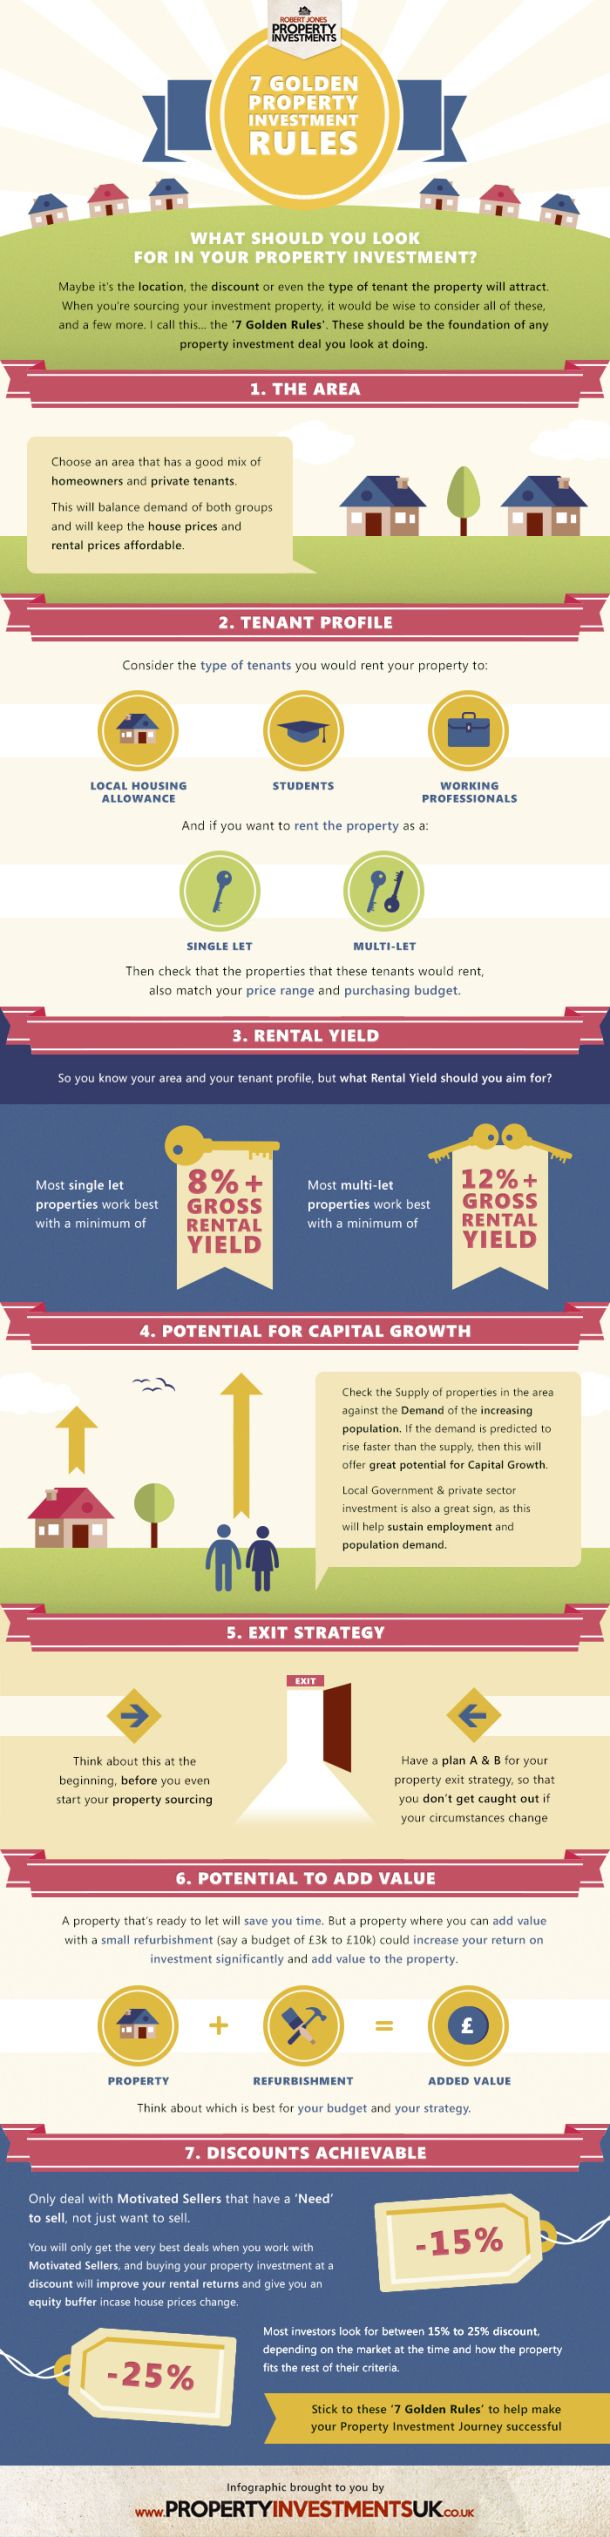 7 Golden Property Investment Rules [INFOGRAPHIC]